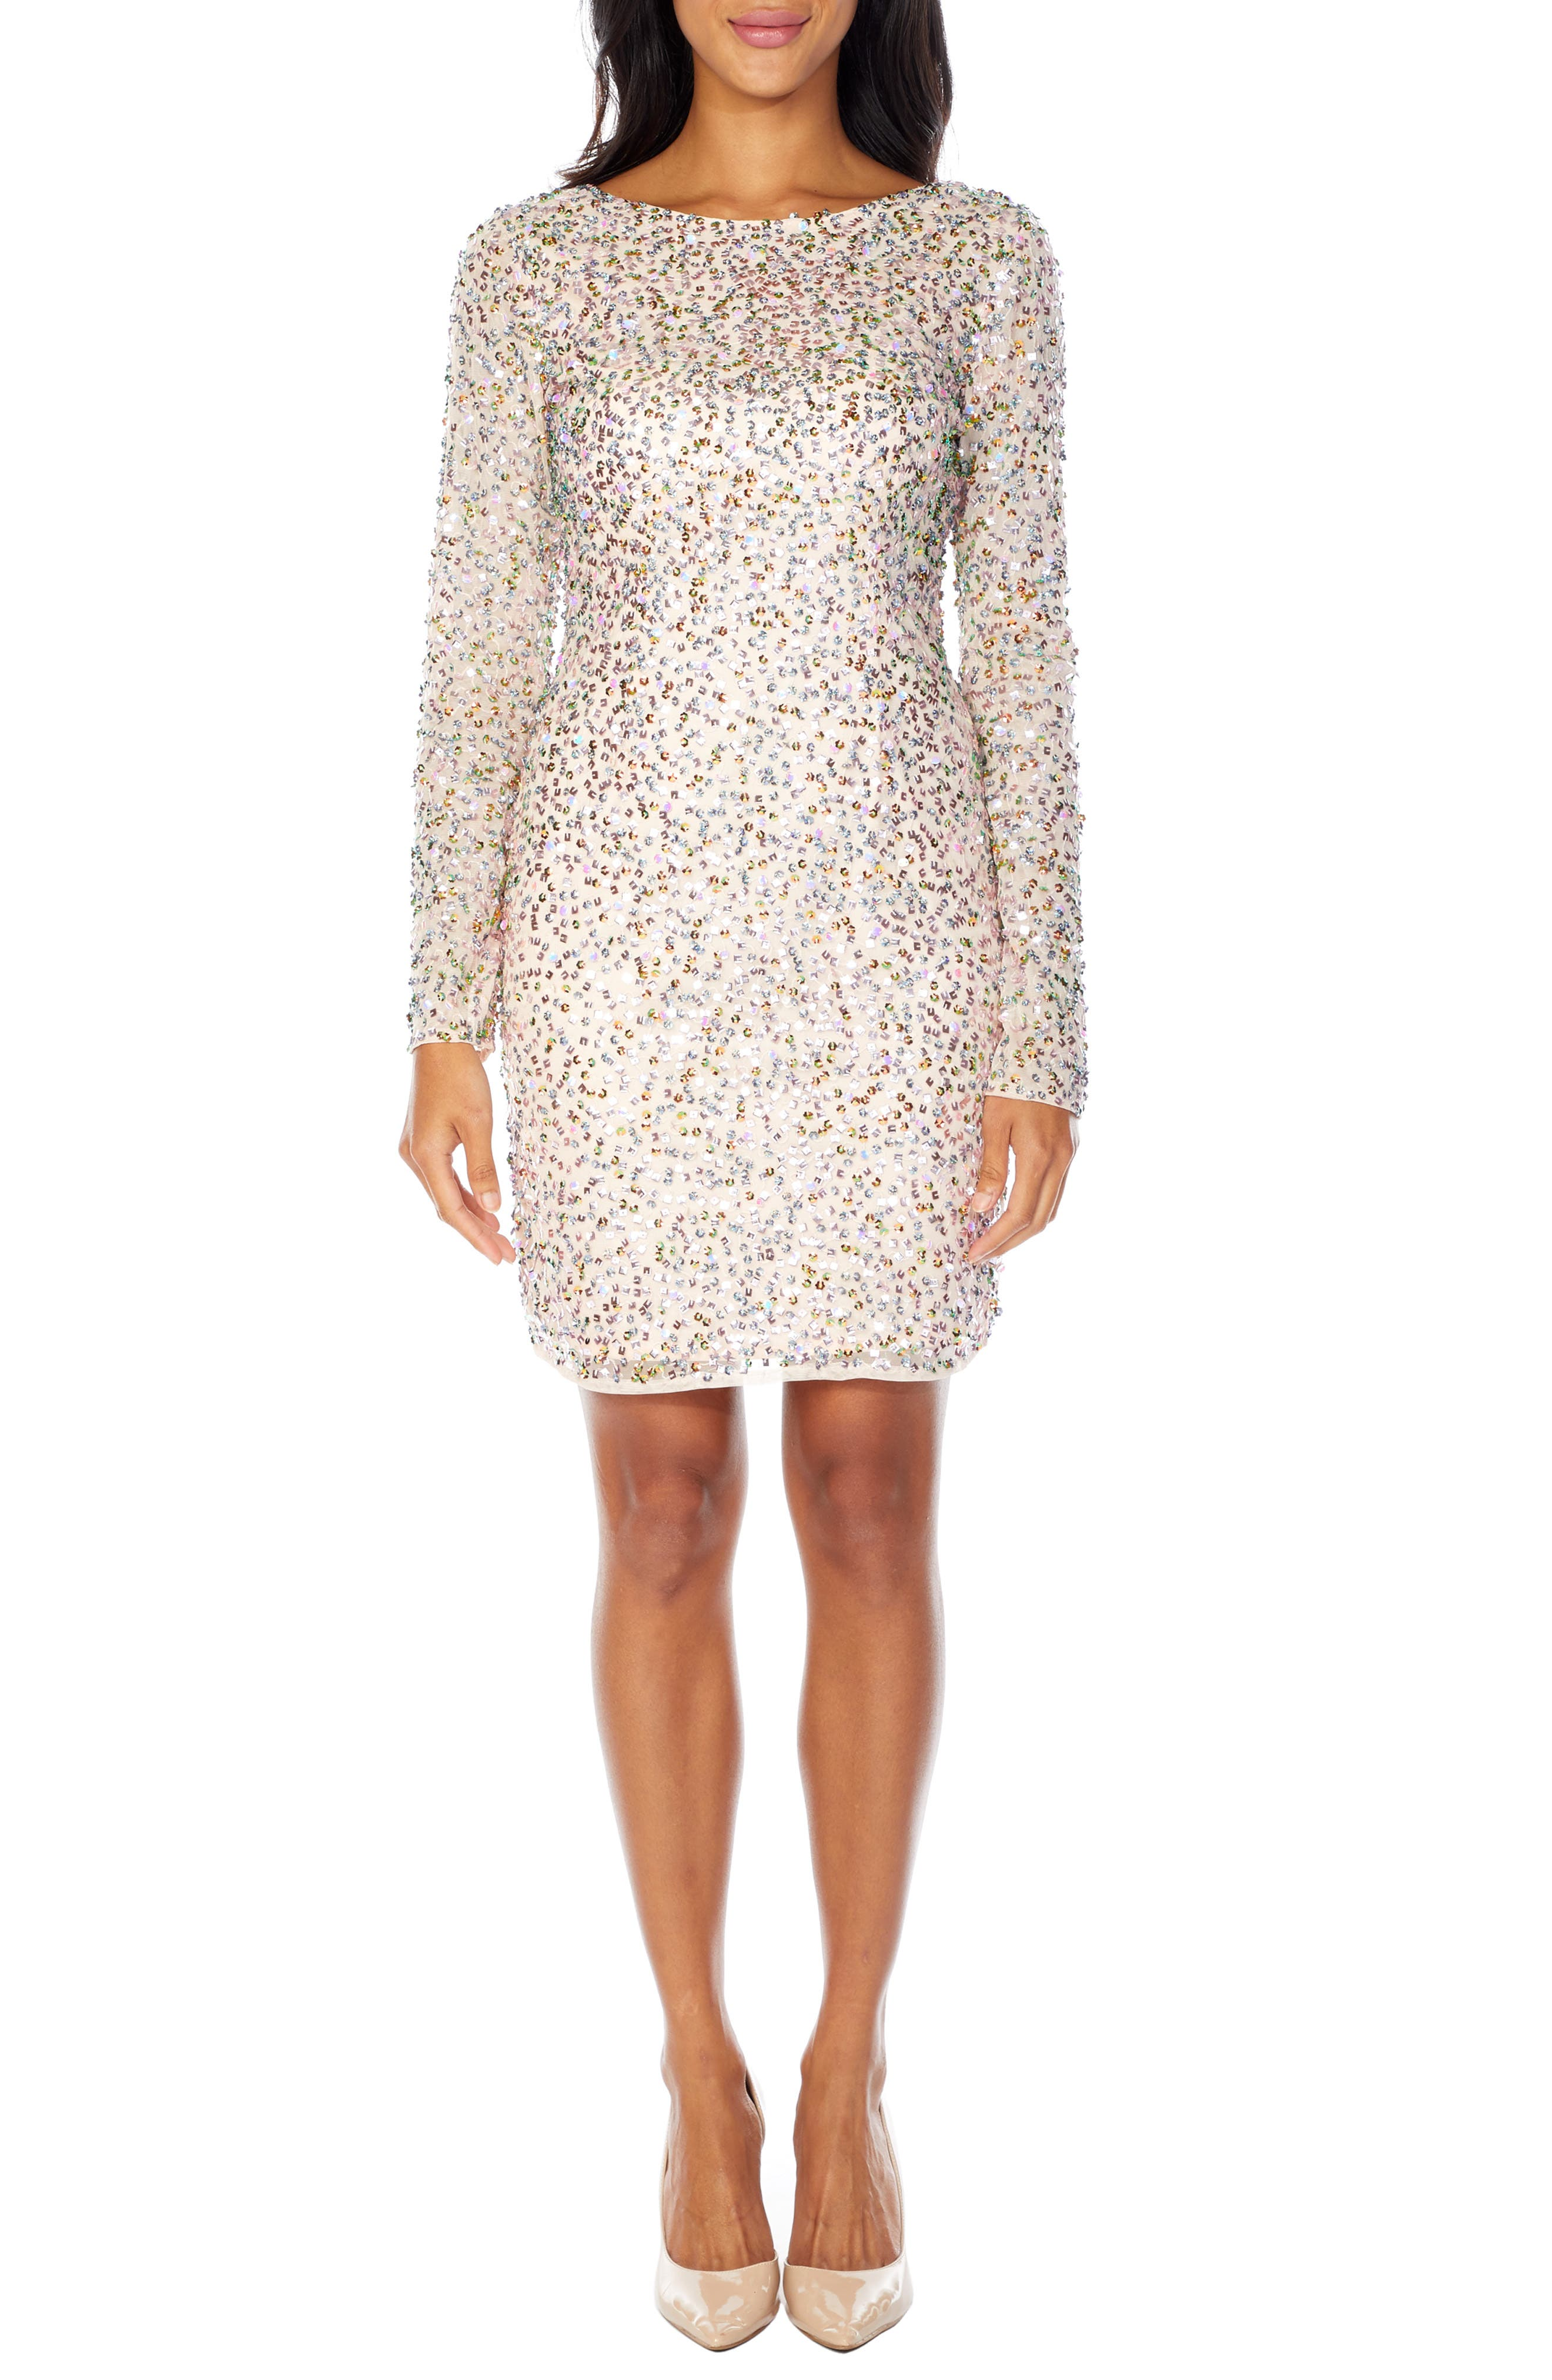 Lace & Beads Akiko Sequin Cocktail Dress, Pink